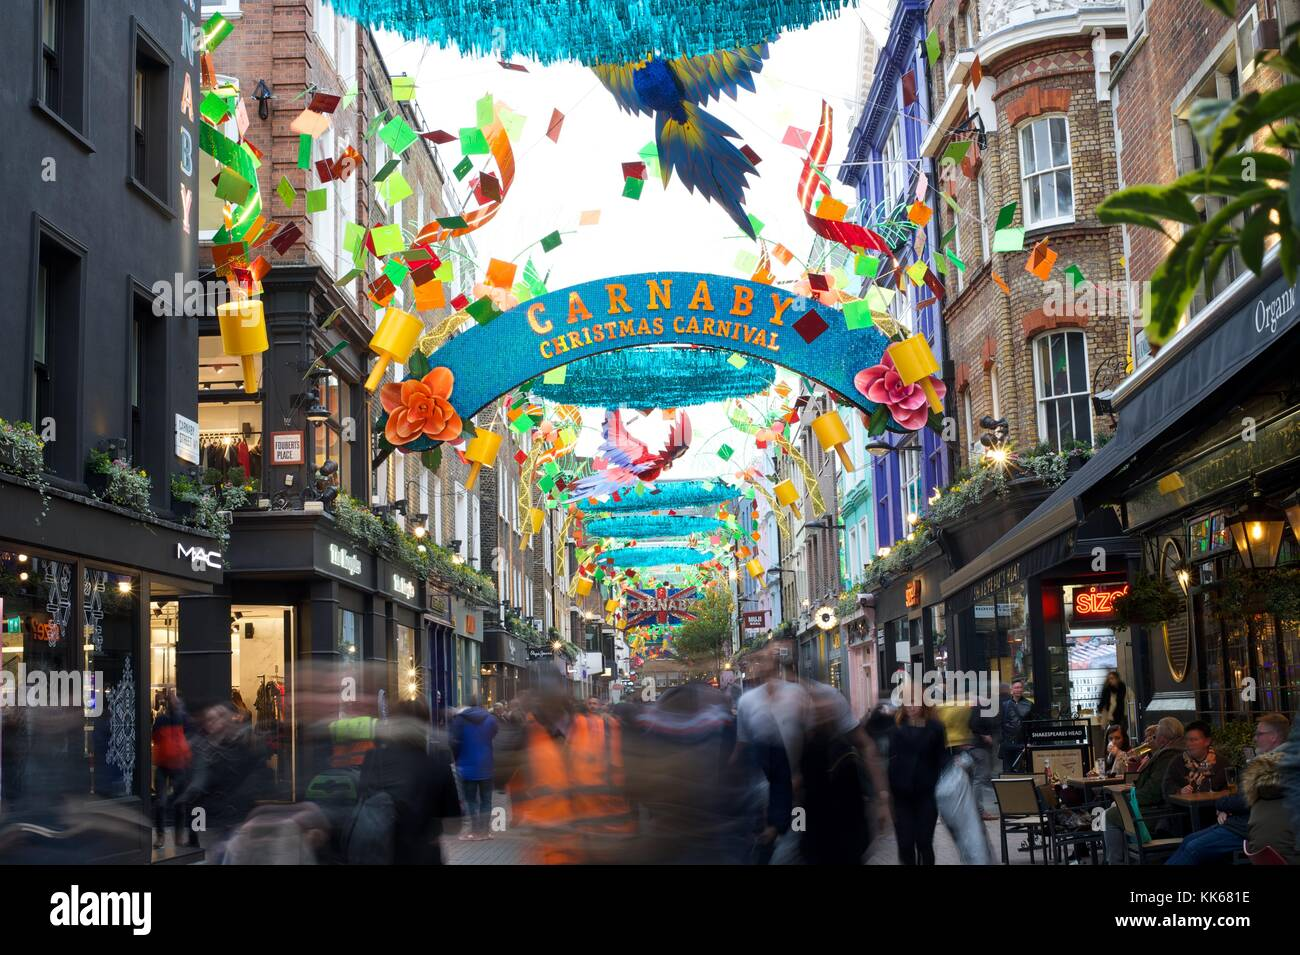 Carnaby Street Stock Photo